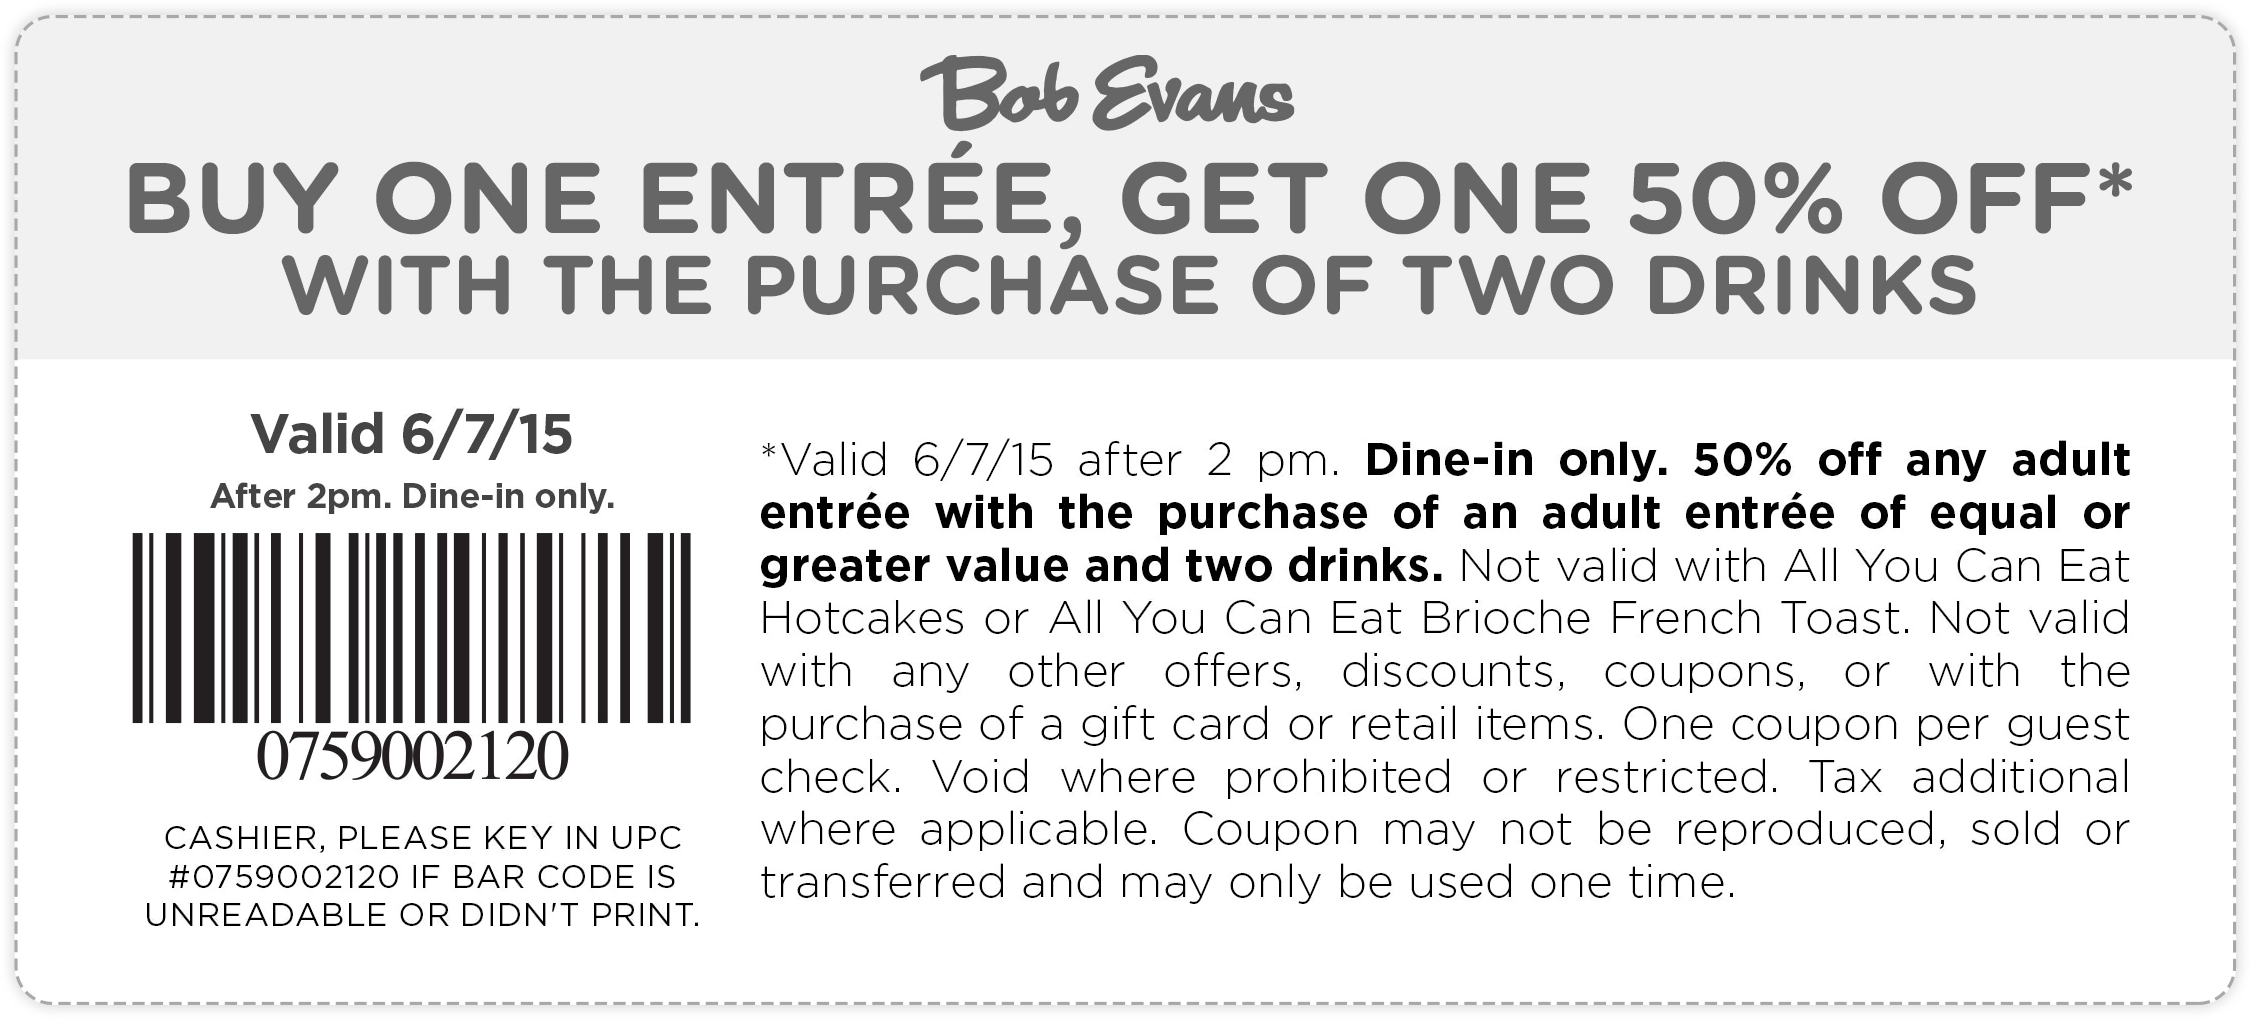 Bob Evans Coupon May 2018 Second entree 50% off today at Bob Evans